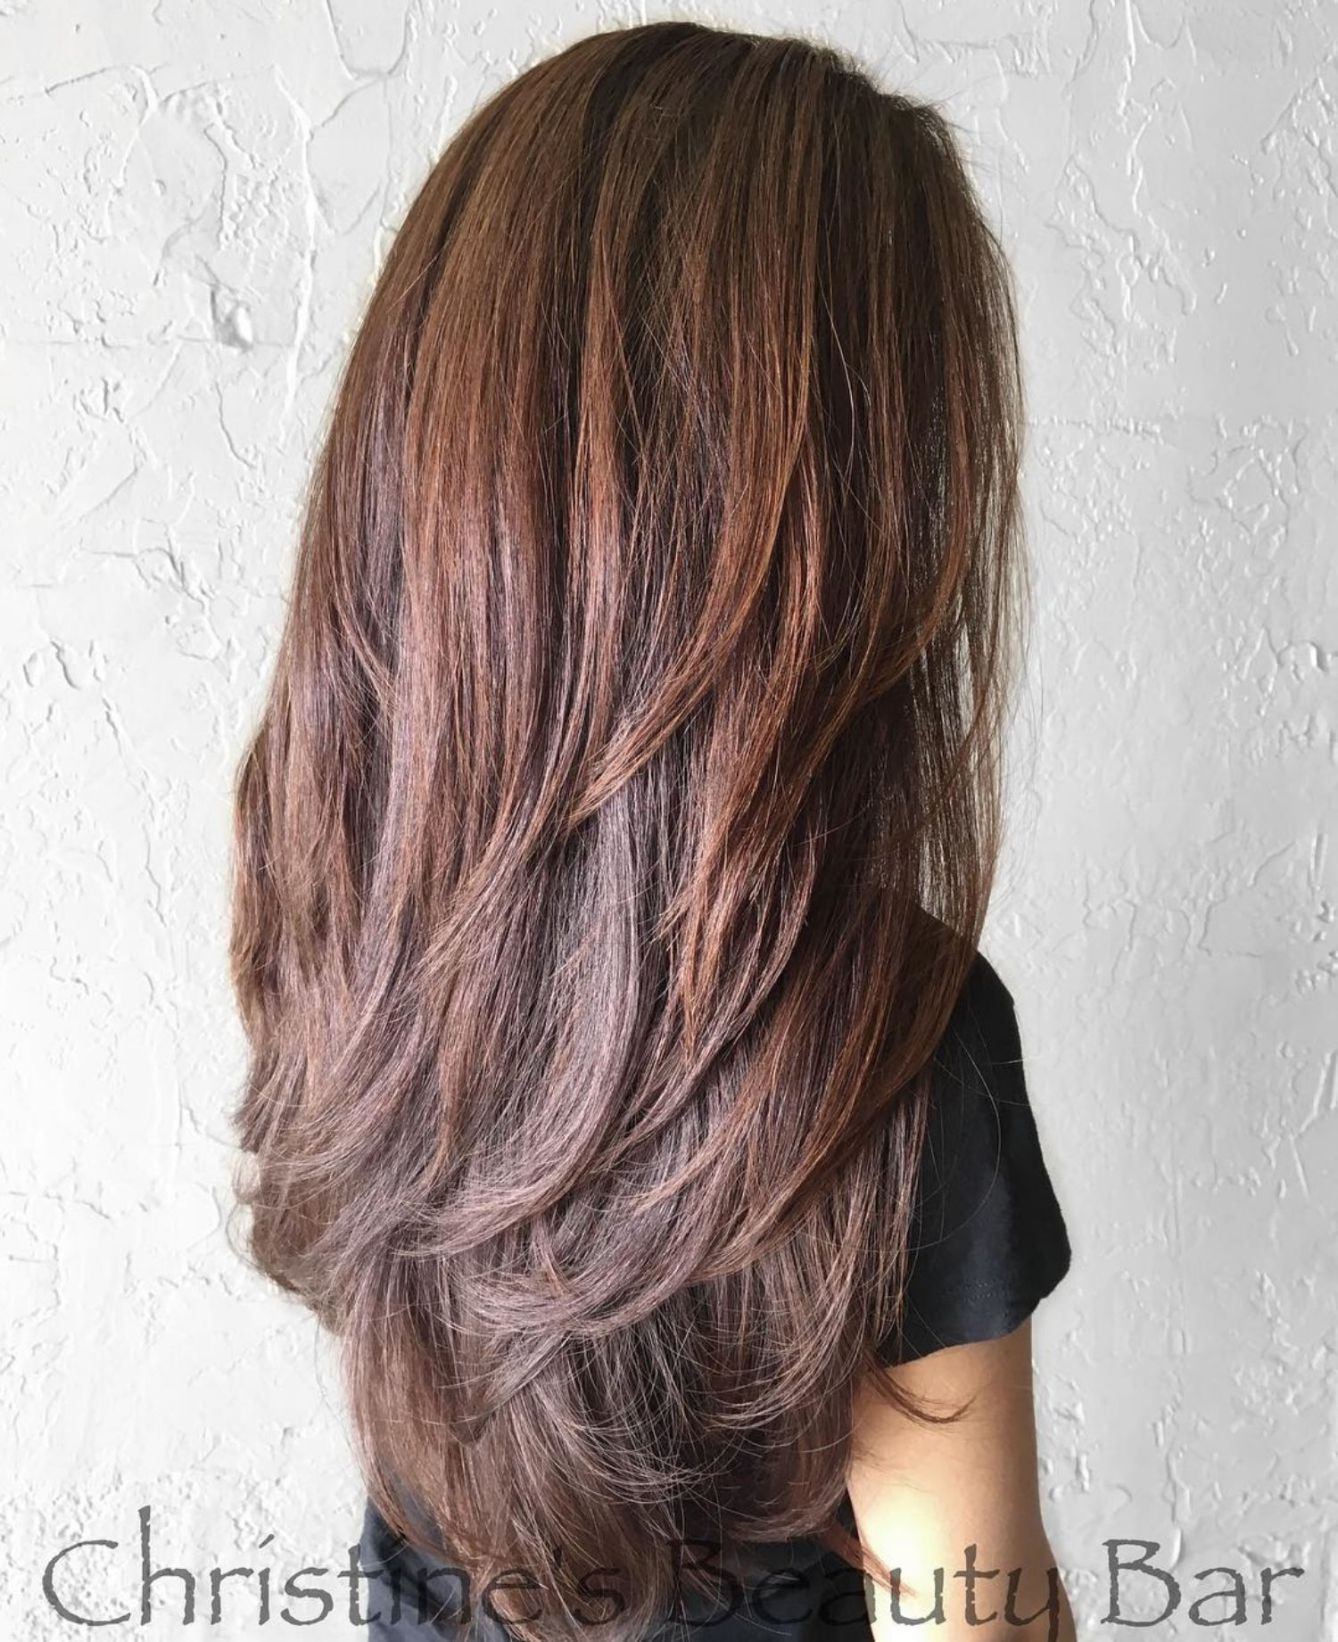 Pin On Hair Colors Hairstyles Mostly Curly